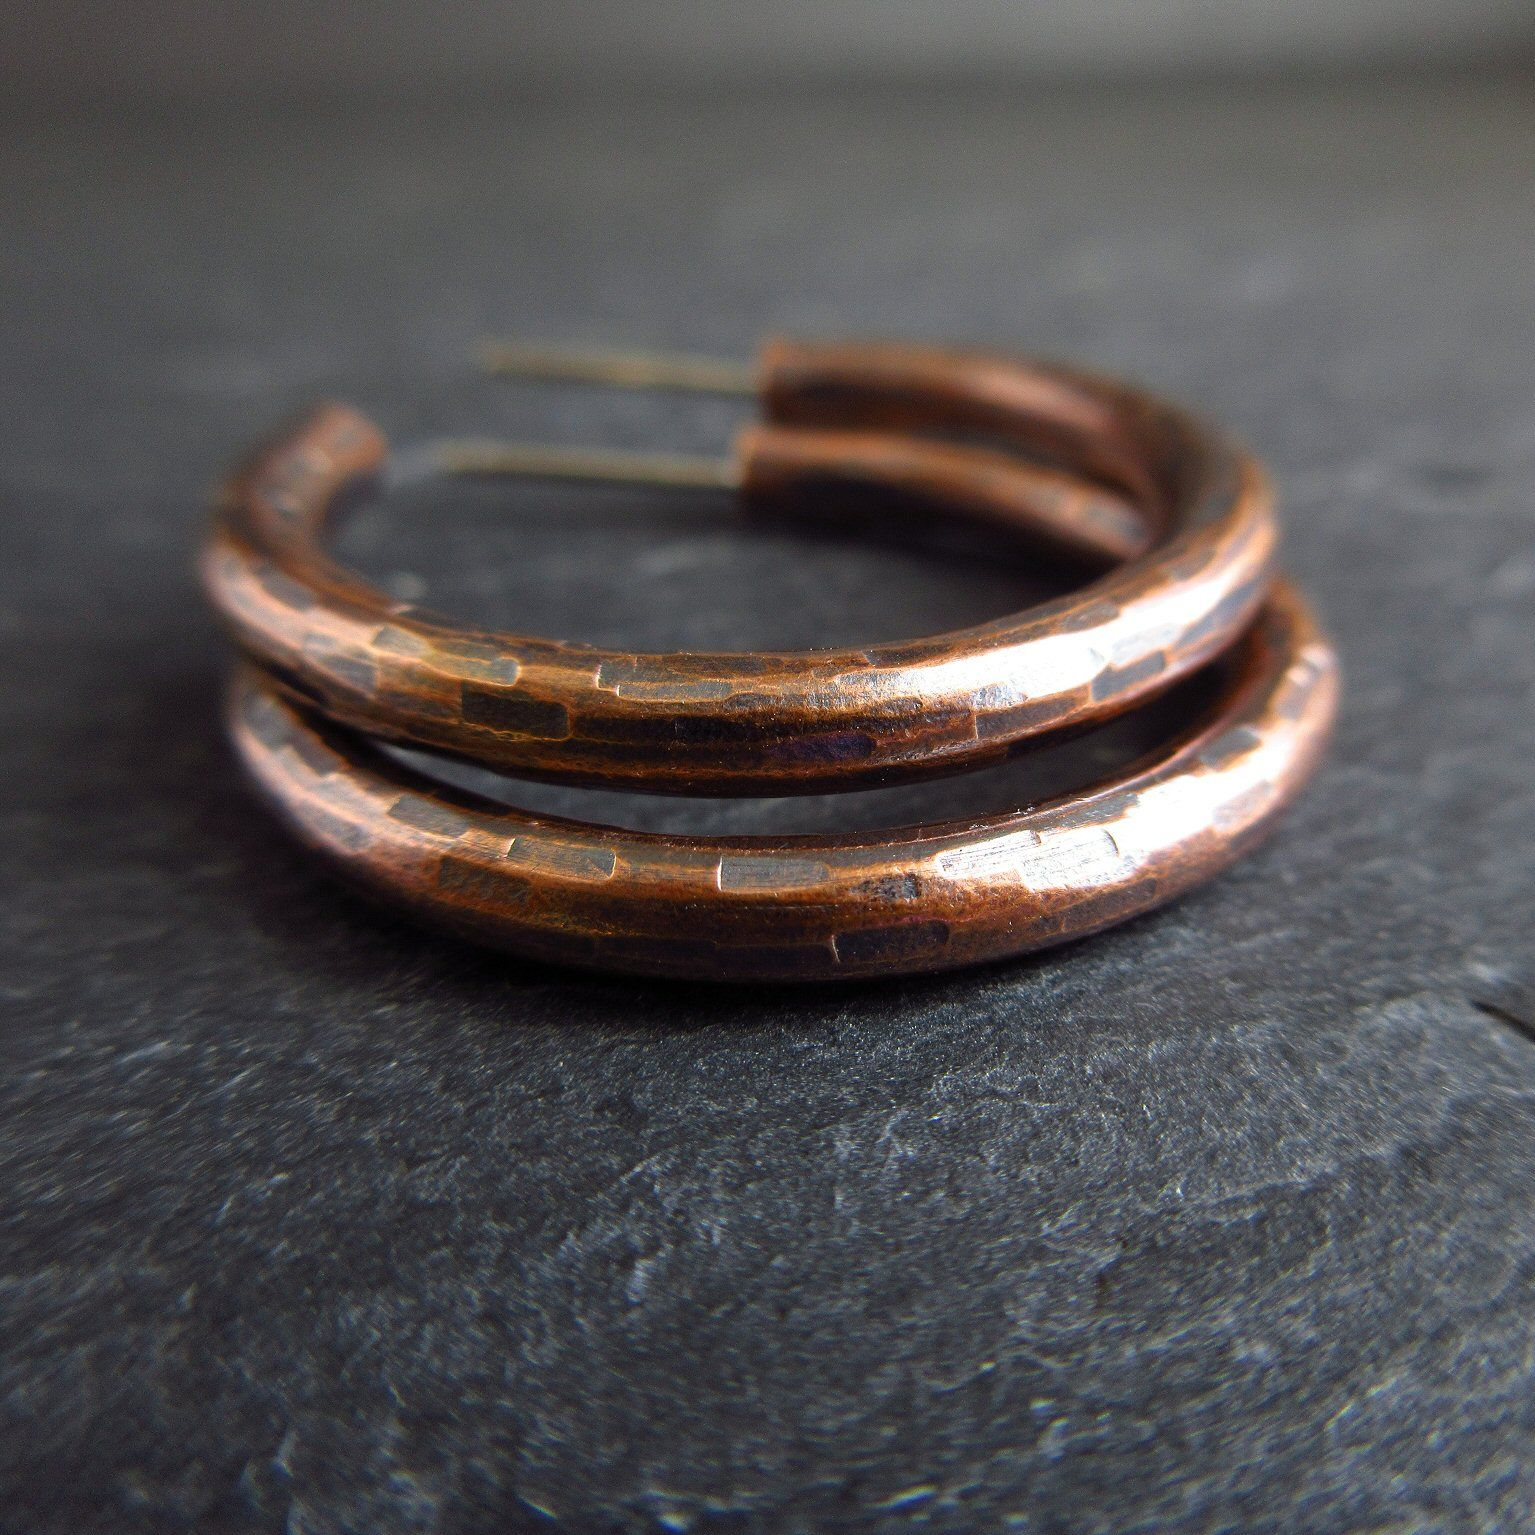 Hammered bronze hoop earrings